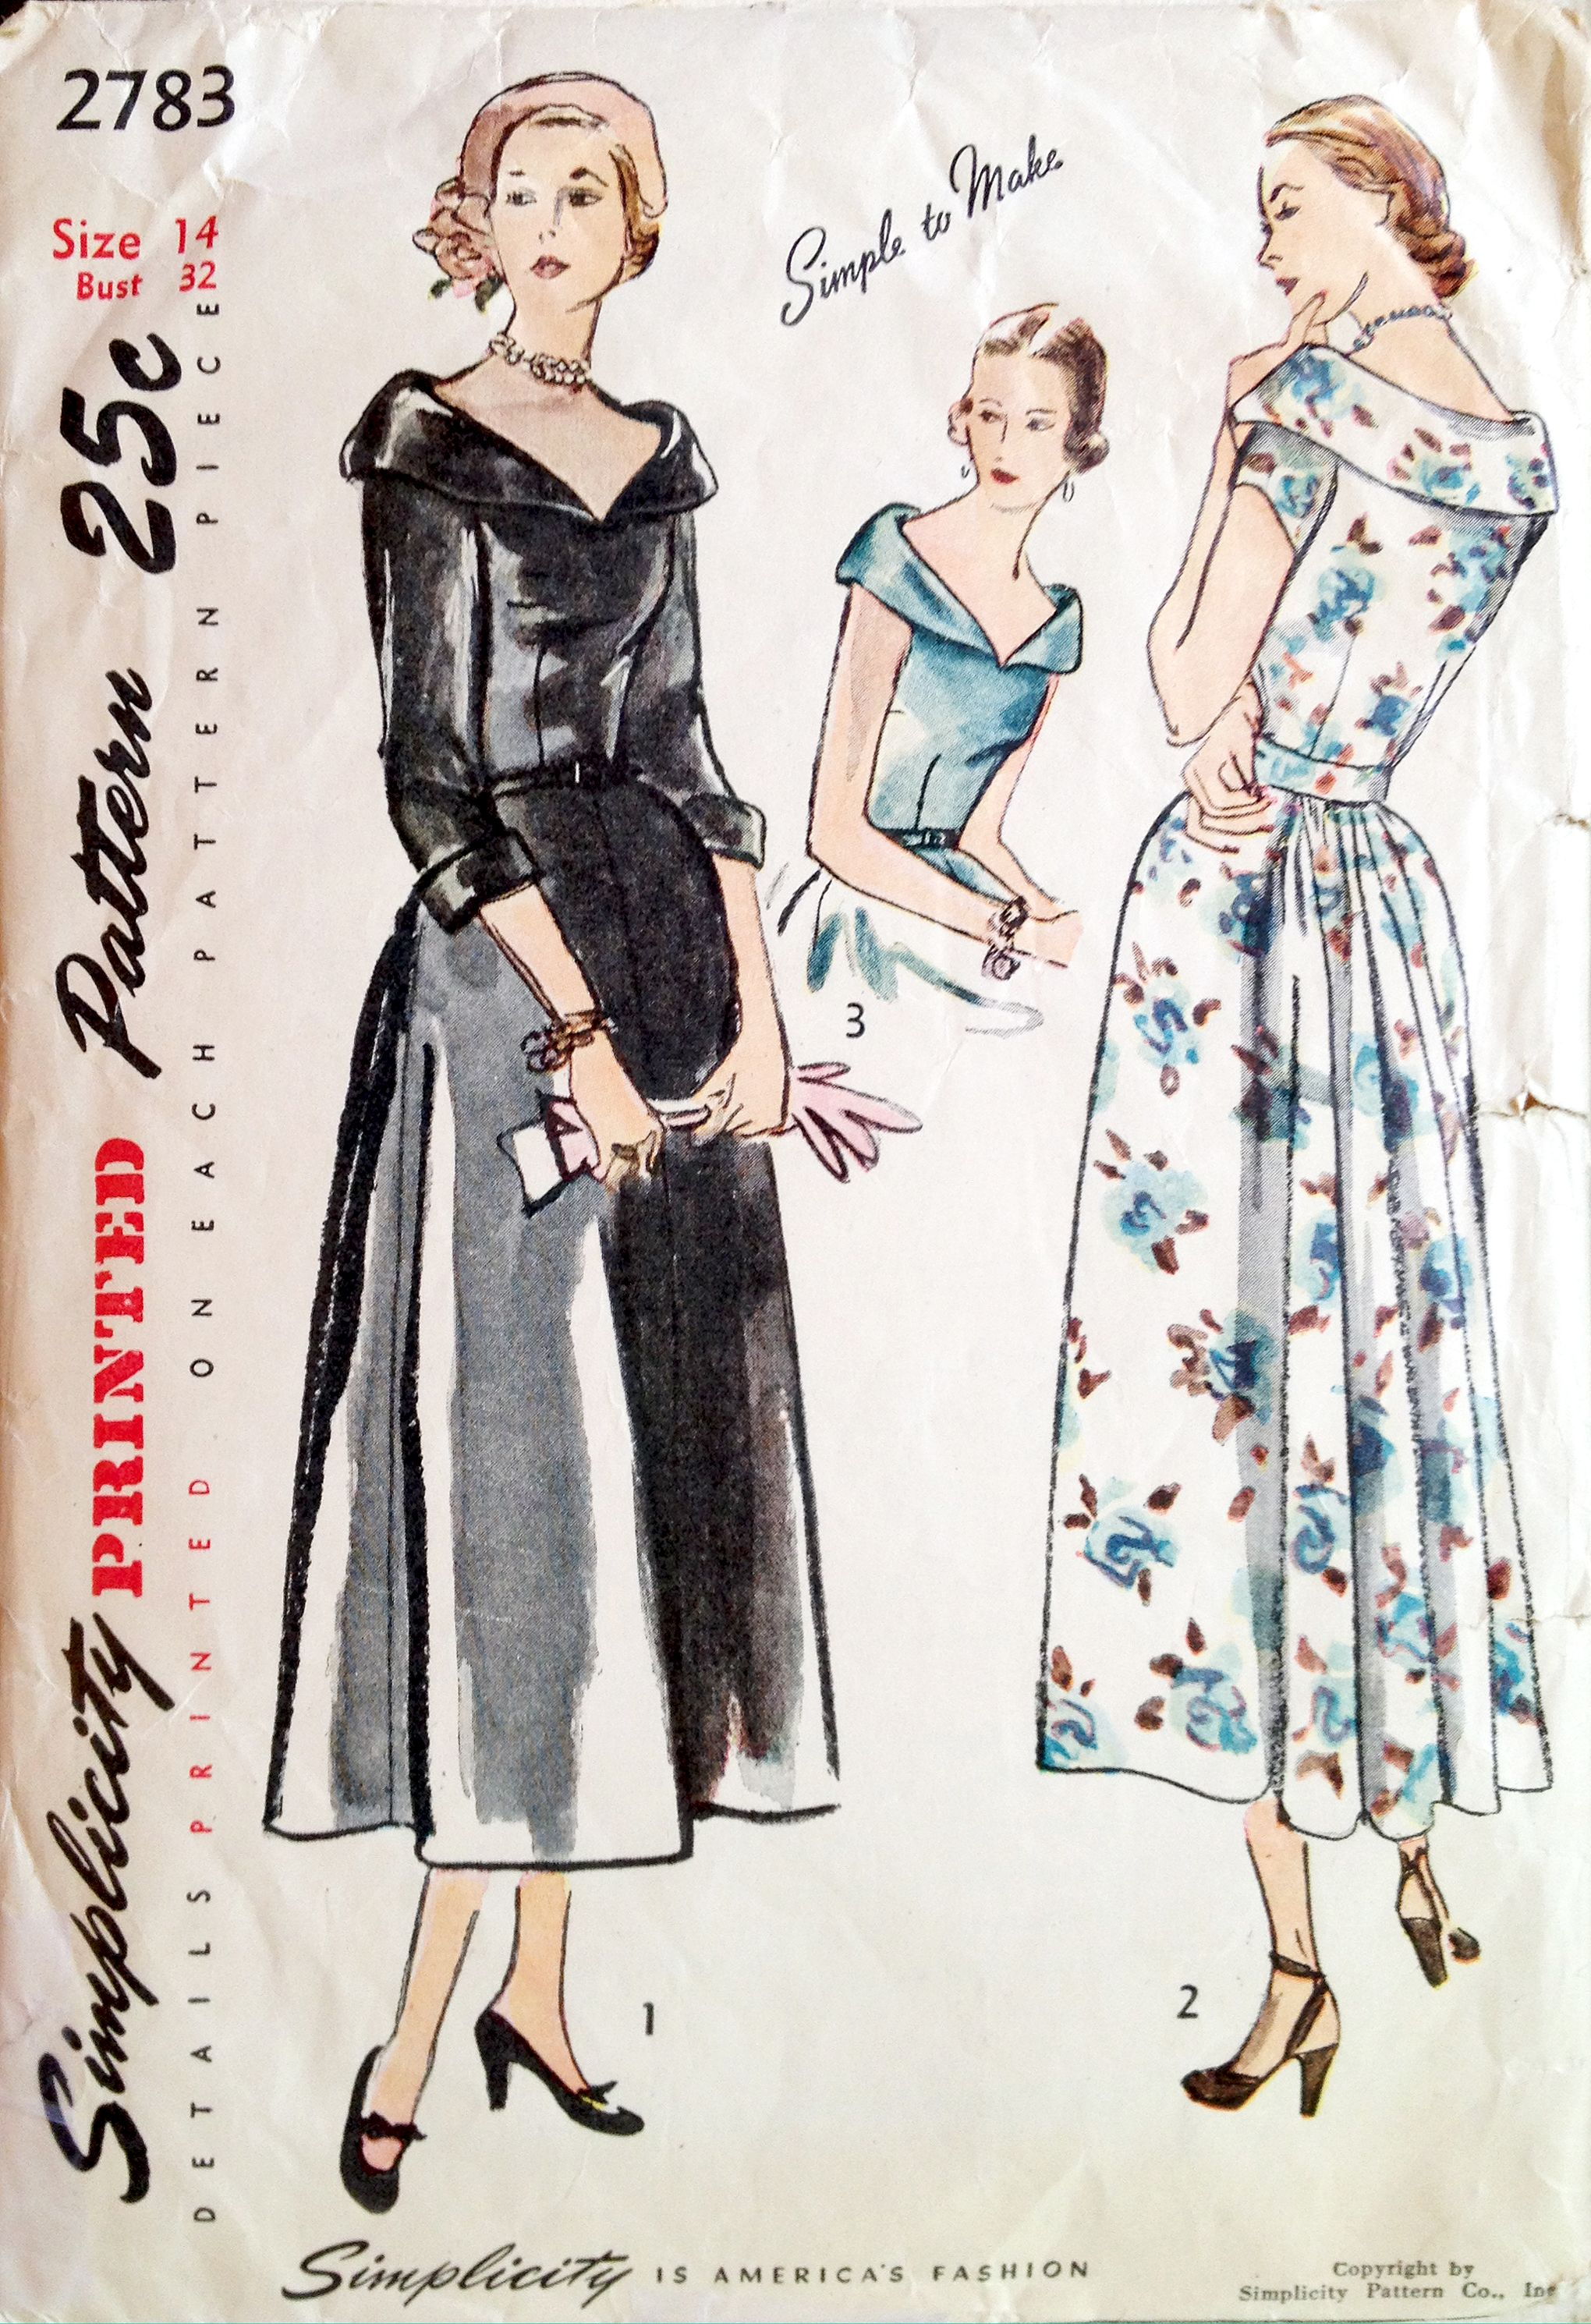 61168661eb Simplicity 2783 (1949) 40s 50s new look vintage fashion style dinner dress  black white floral portrait collar long ballet length illustration print ad